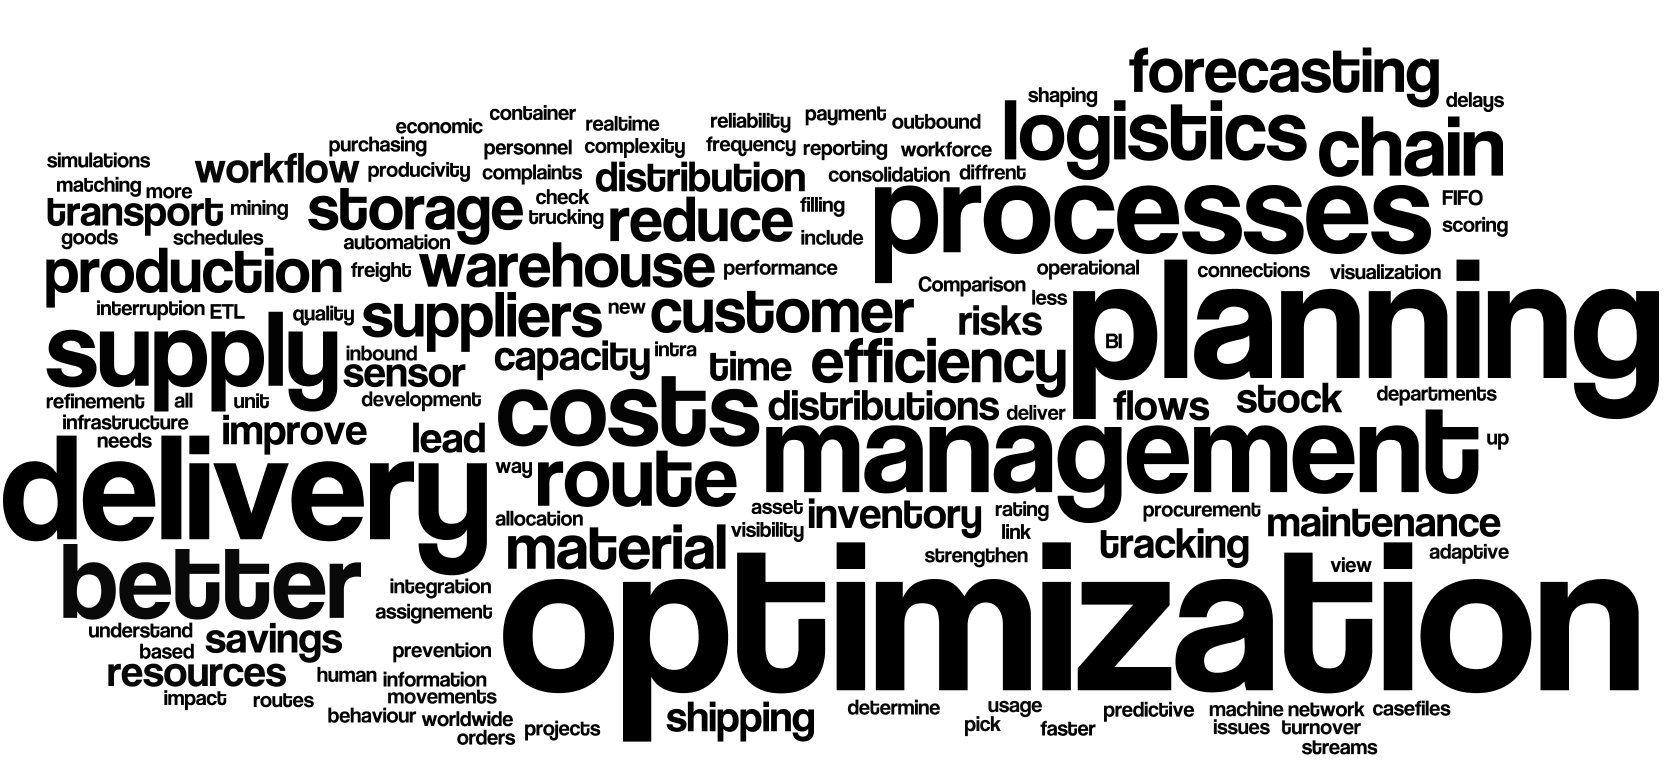 Big Data Use Cases in Logistik/Supply Chain Abbildung 22: Worthäufigkeit in Use Cases in Logistik/Supply chain (n=74) Genannte Use Cases in Logistik/Supply Chain Workflow Management,